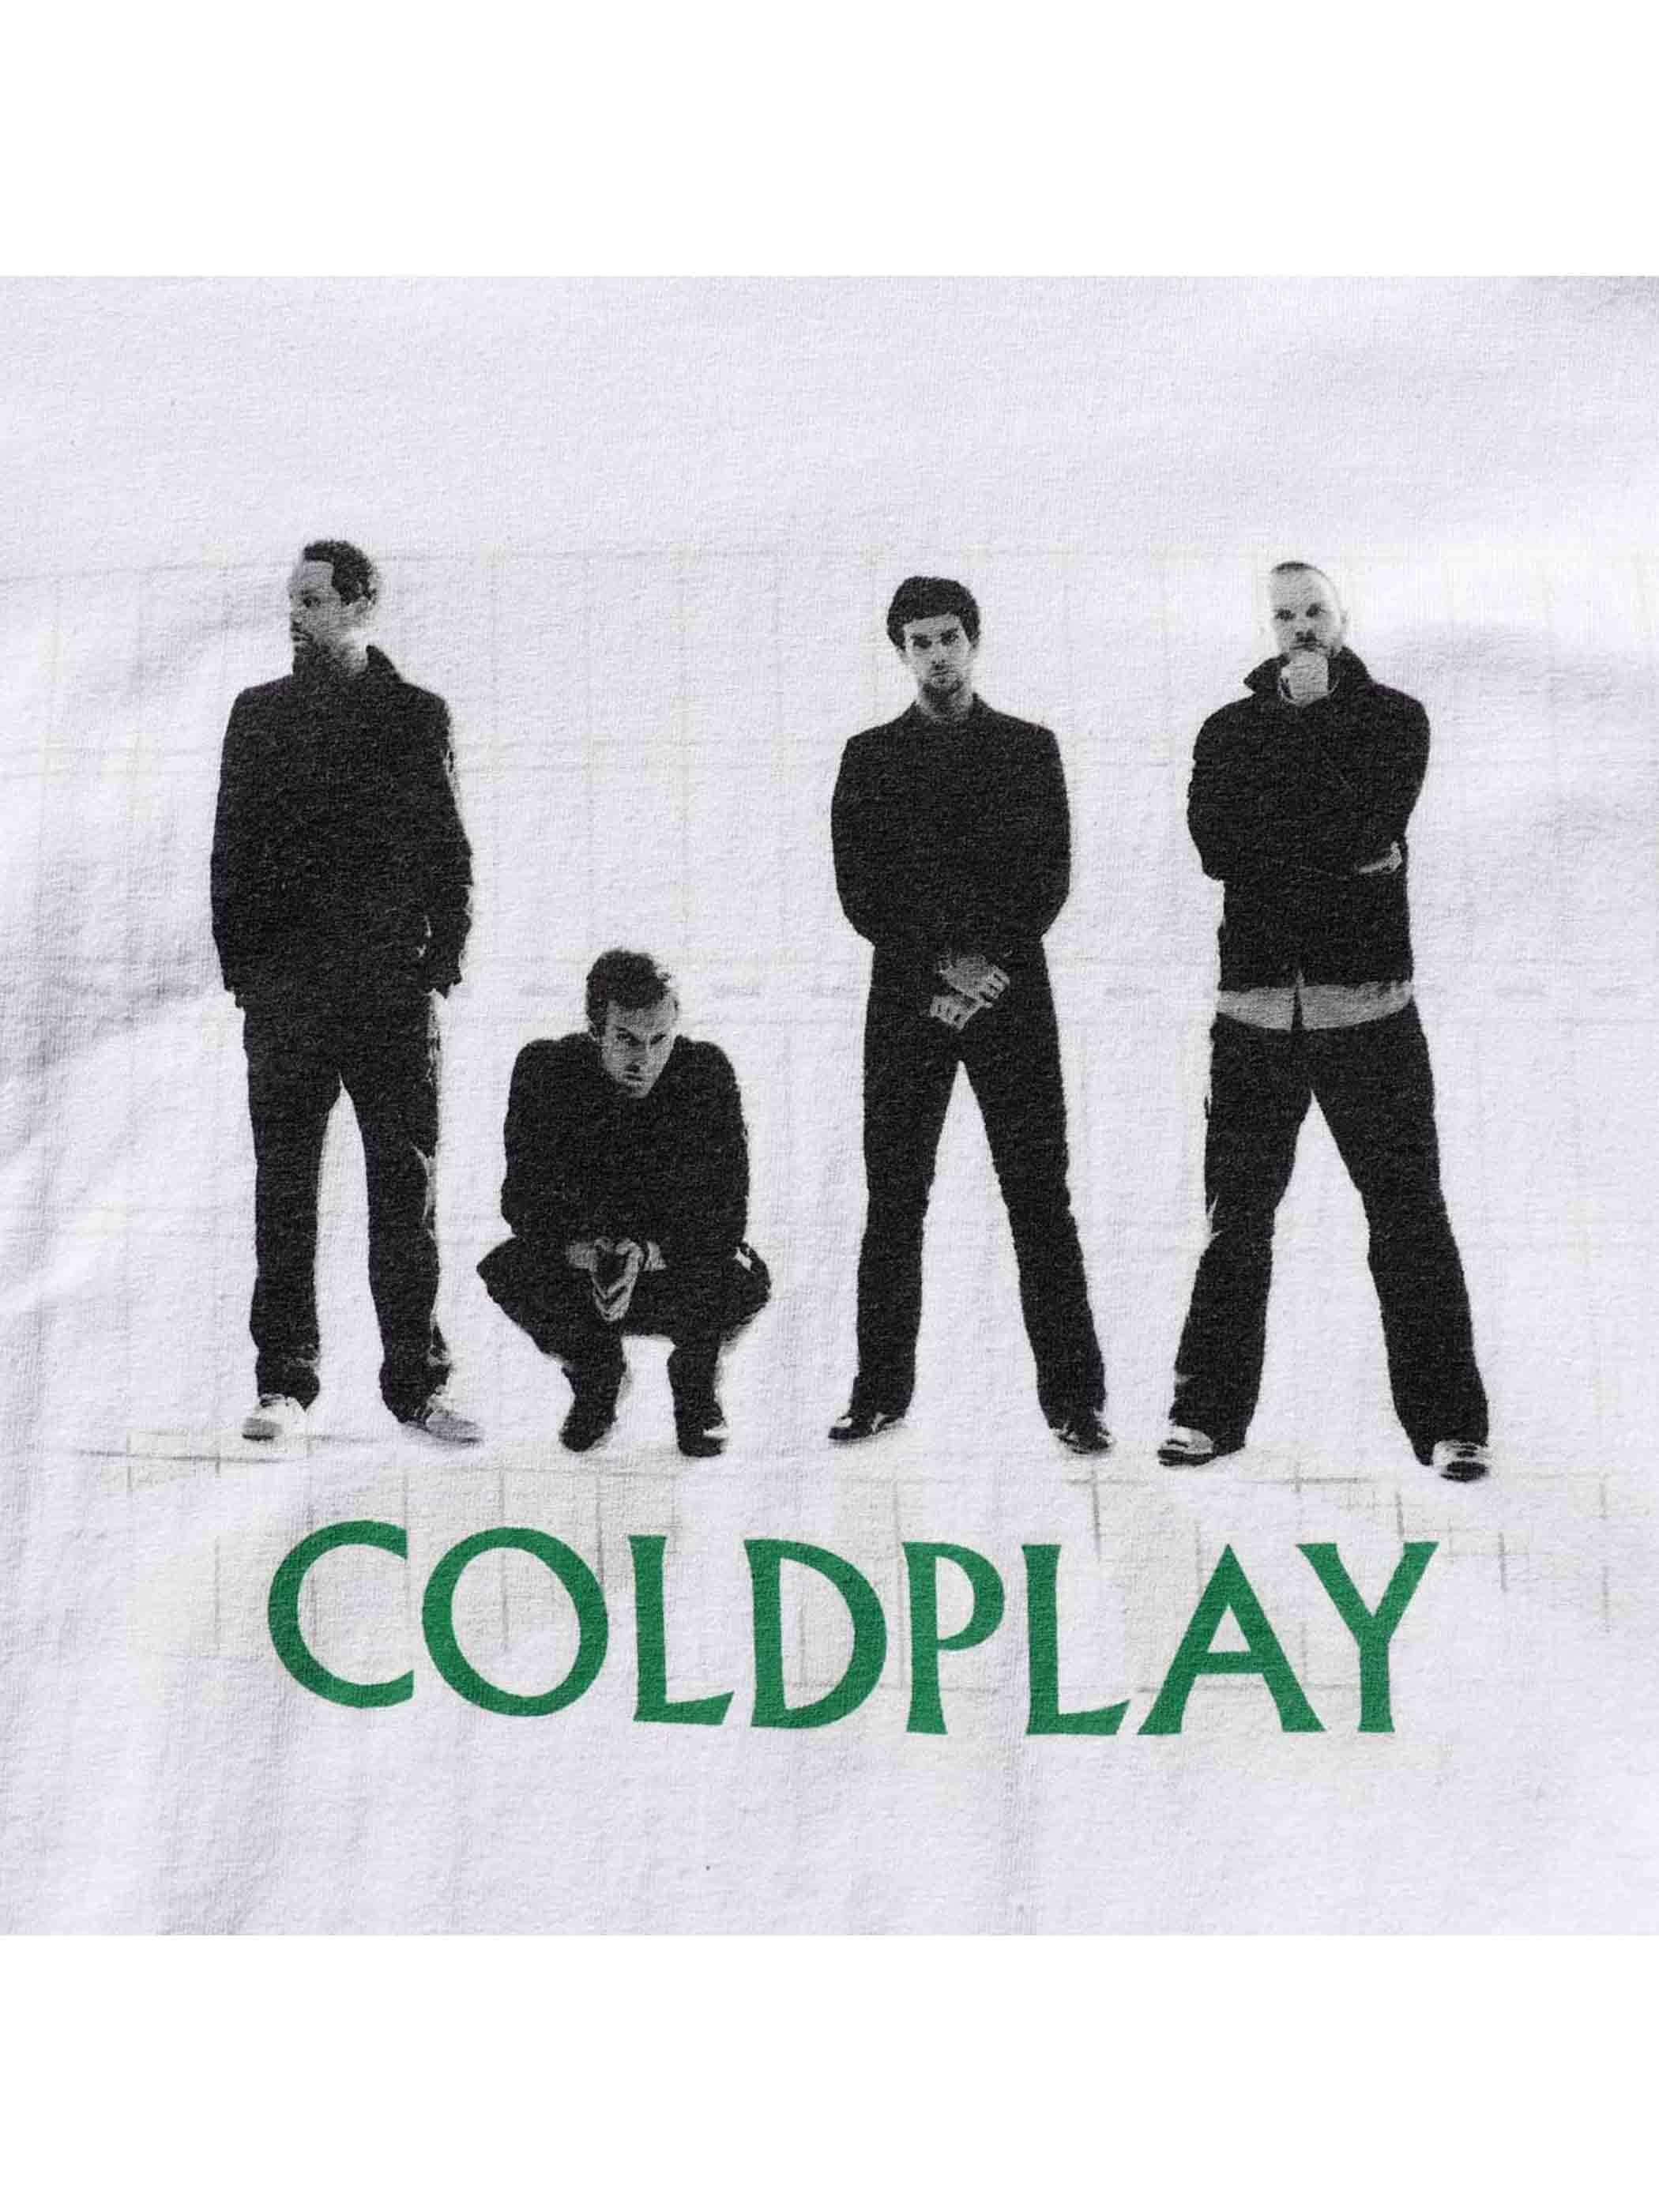 00's COLDPLAY USA製 Tシャツ [XL]